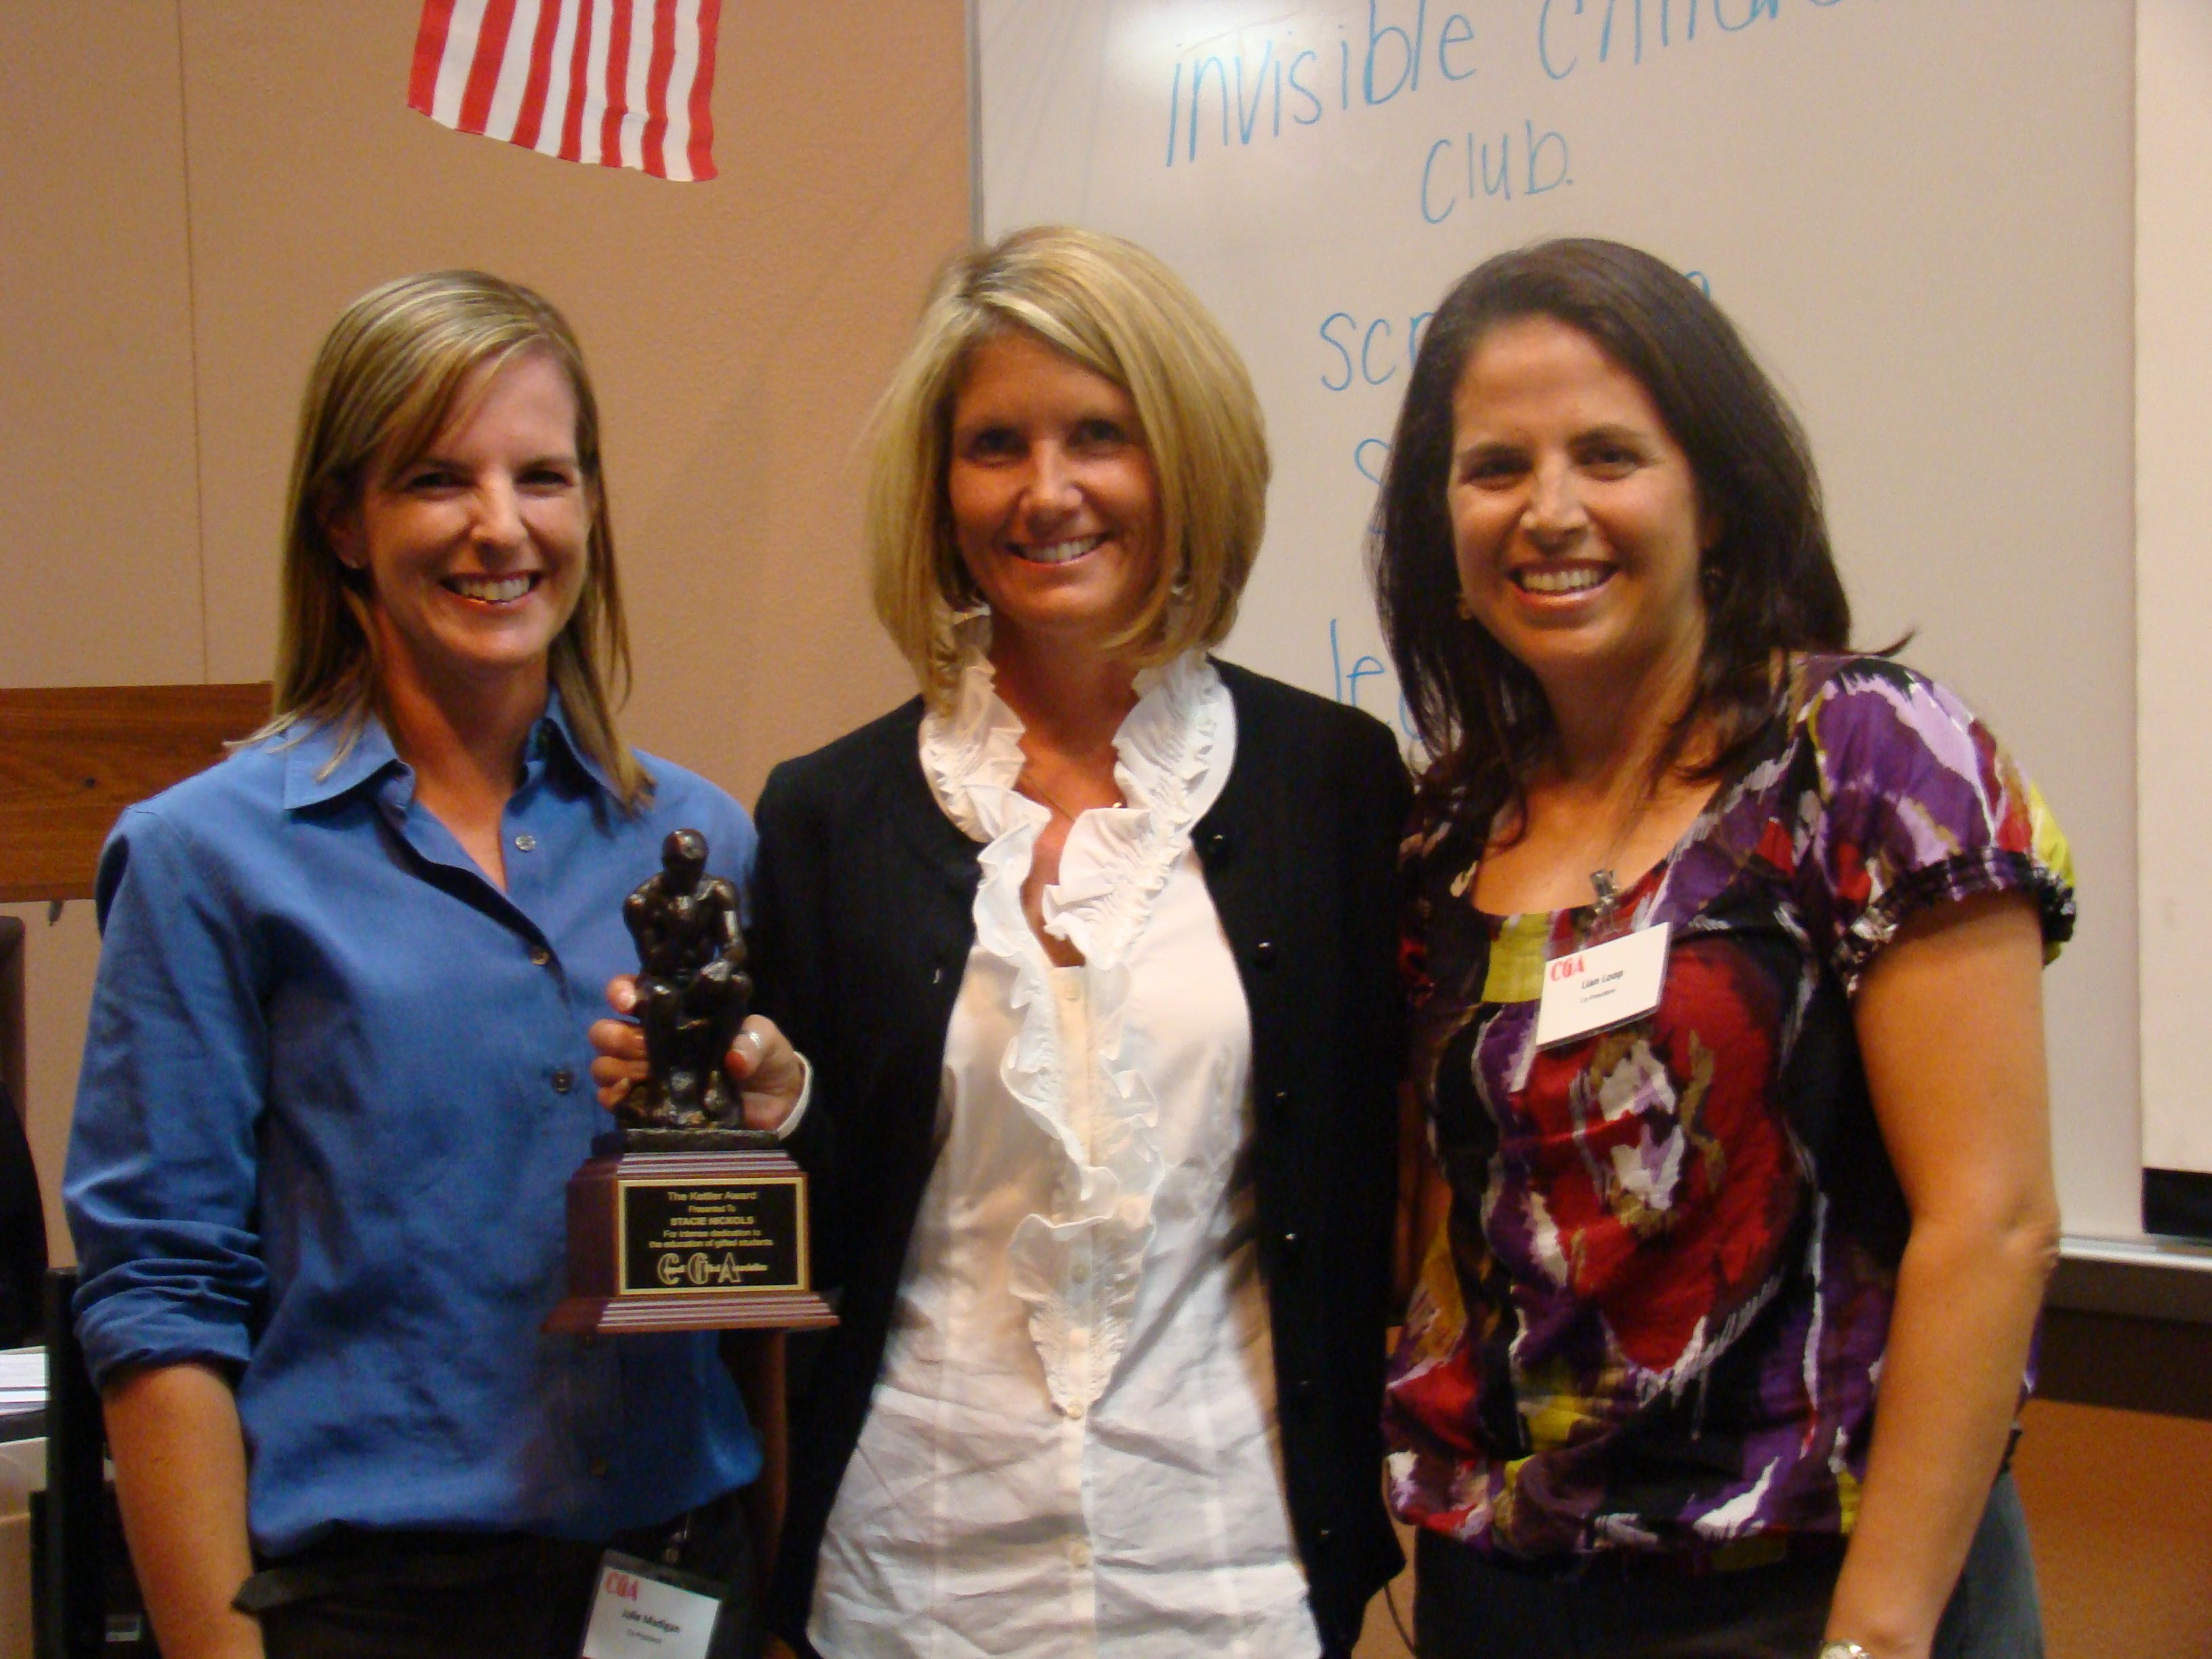 CGA Co-Presidents Julie Madigan and Lian Loop with Kettler Award Winner Stacie Nickols (center)